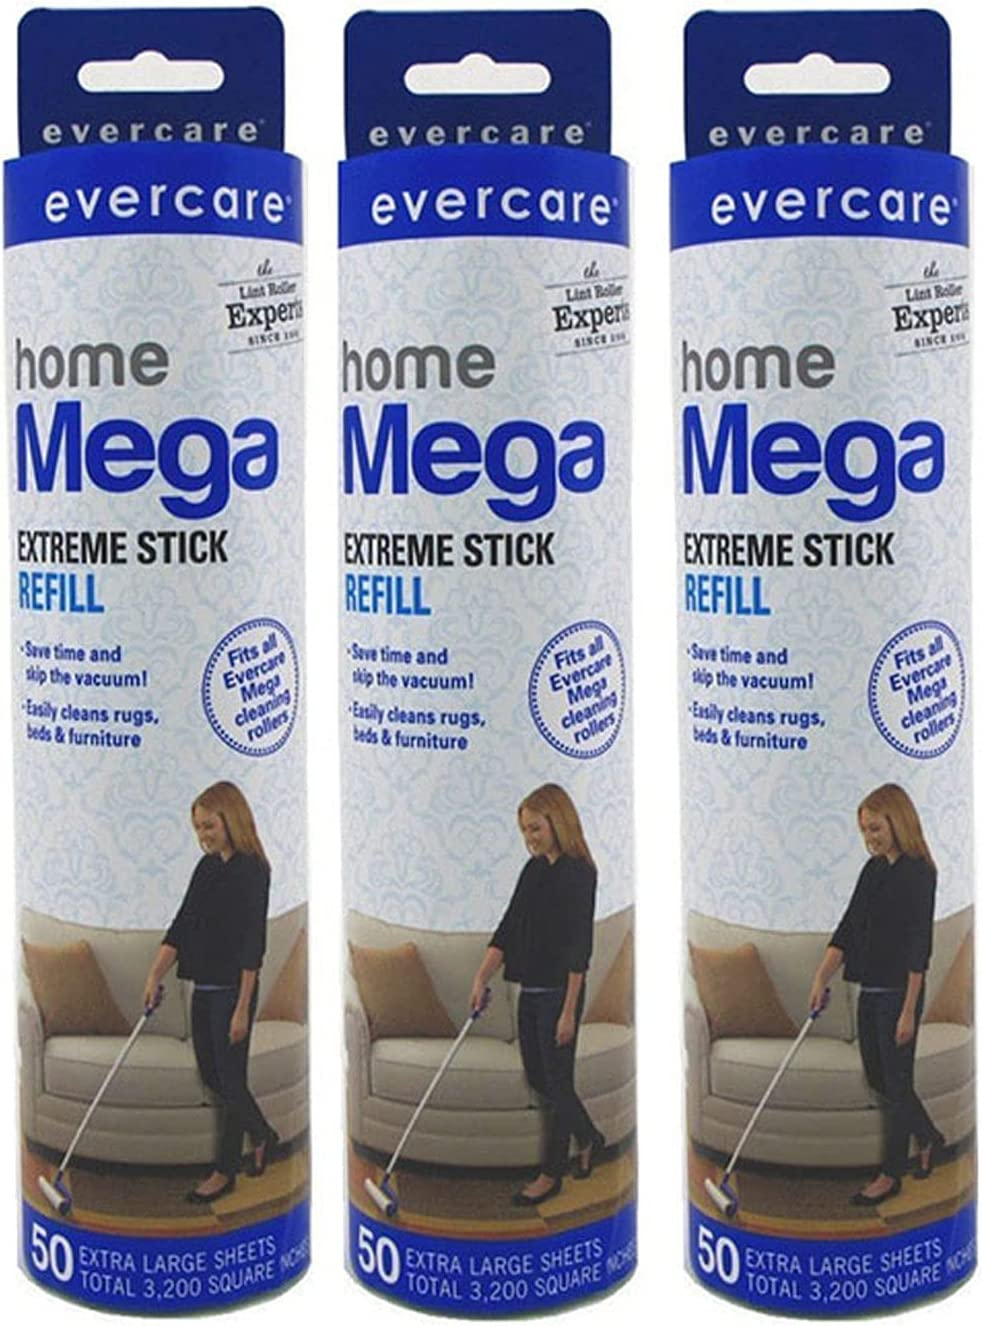 Evercare Mega Large Surface Roller Refill Challenge the lowest price Pack B0 6 Sheets 50 Indefinitely